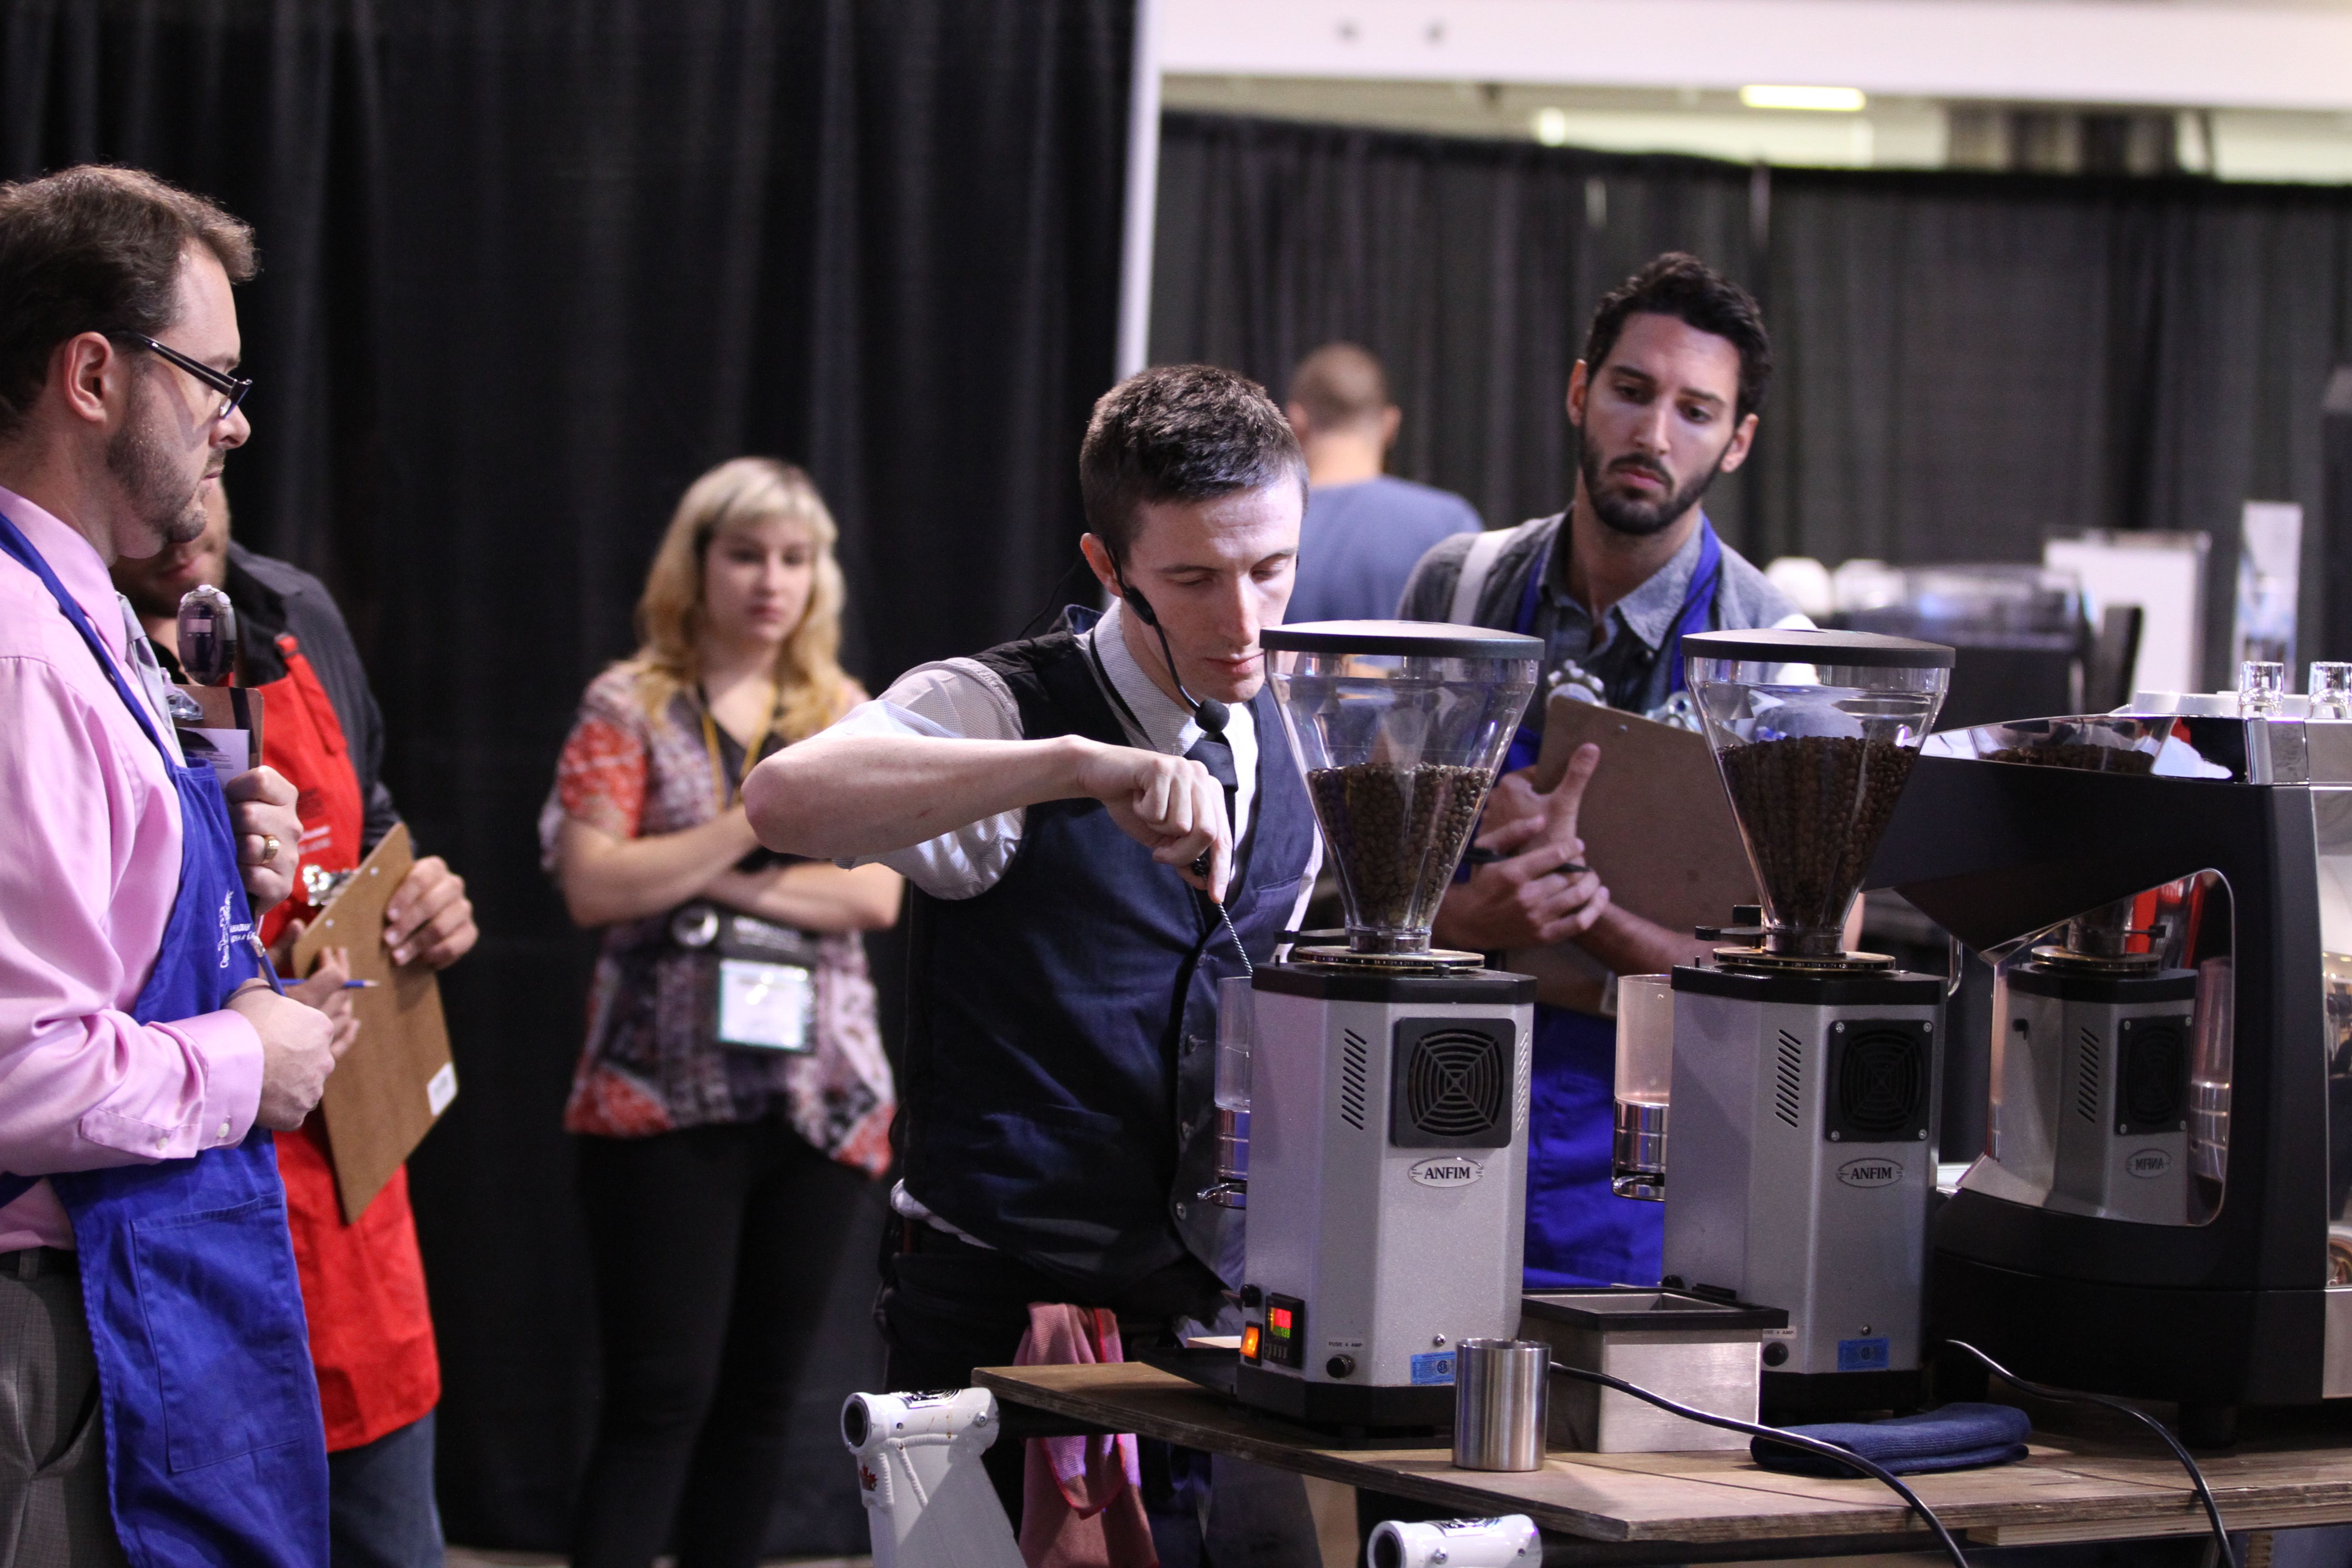 Competing for the title... - Canadian Coffee & Tea Show Toronto 2012